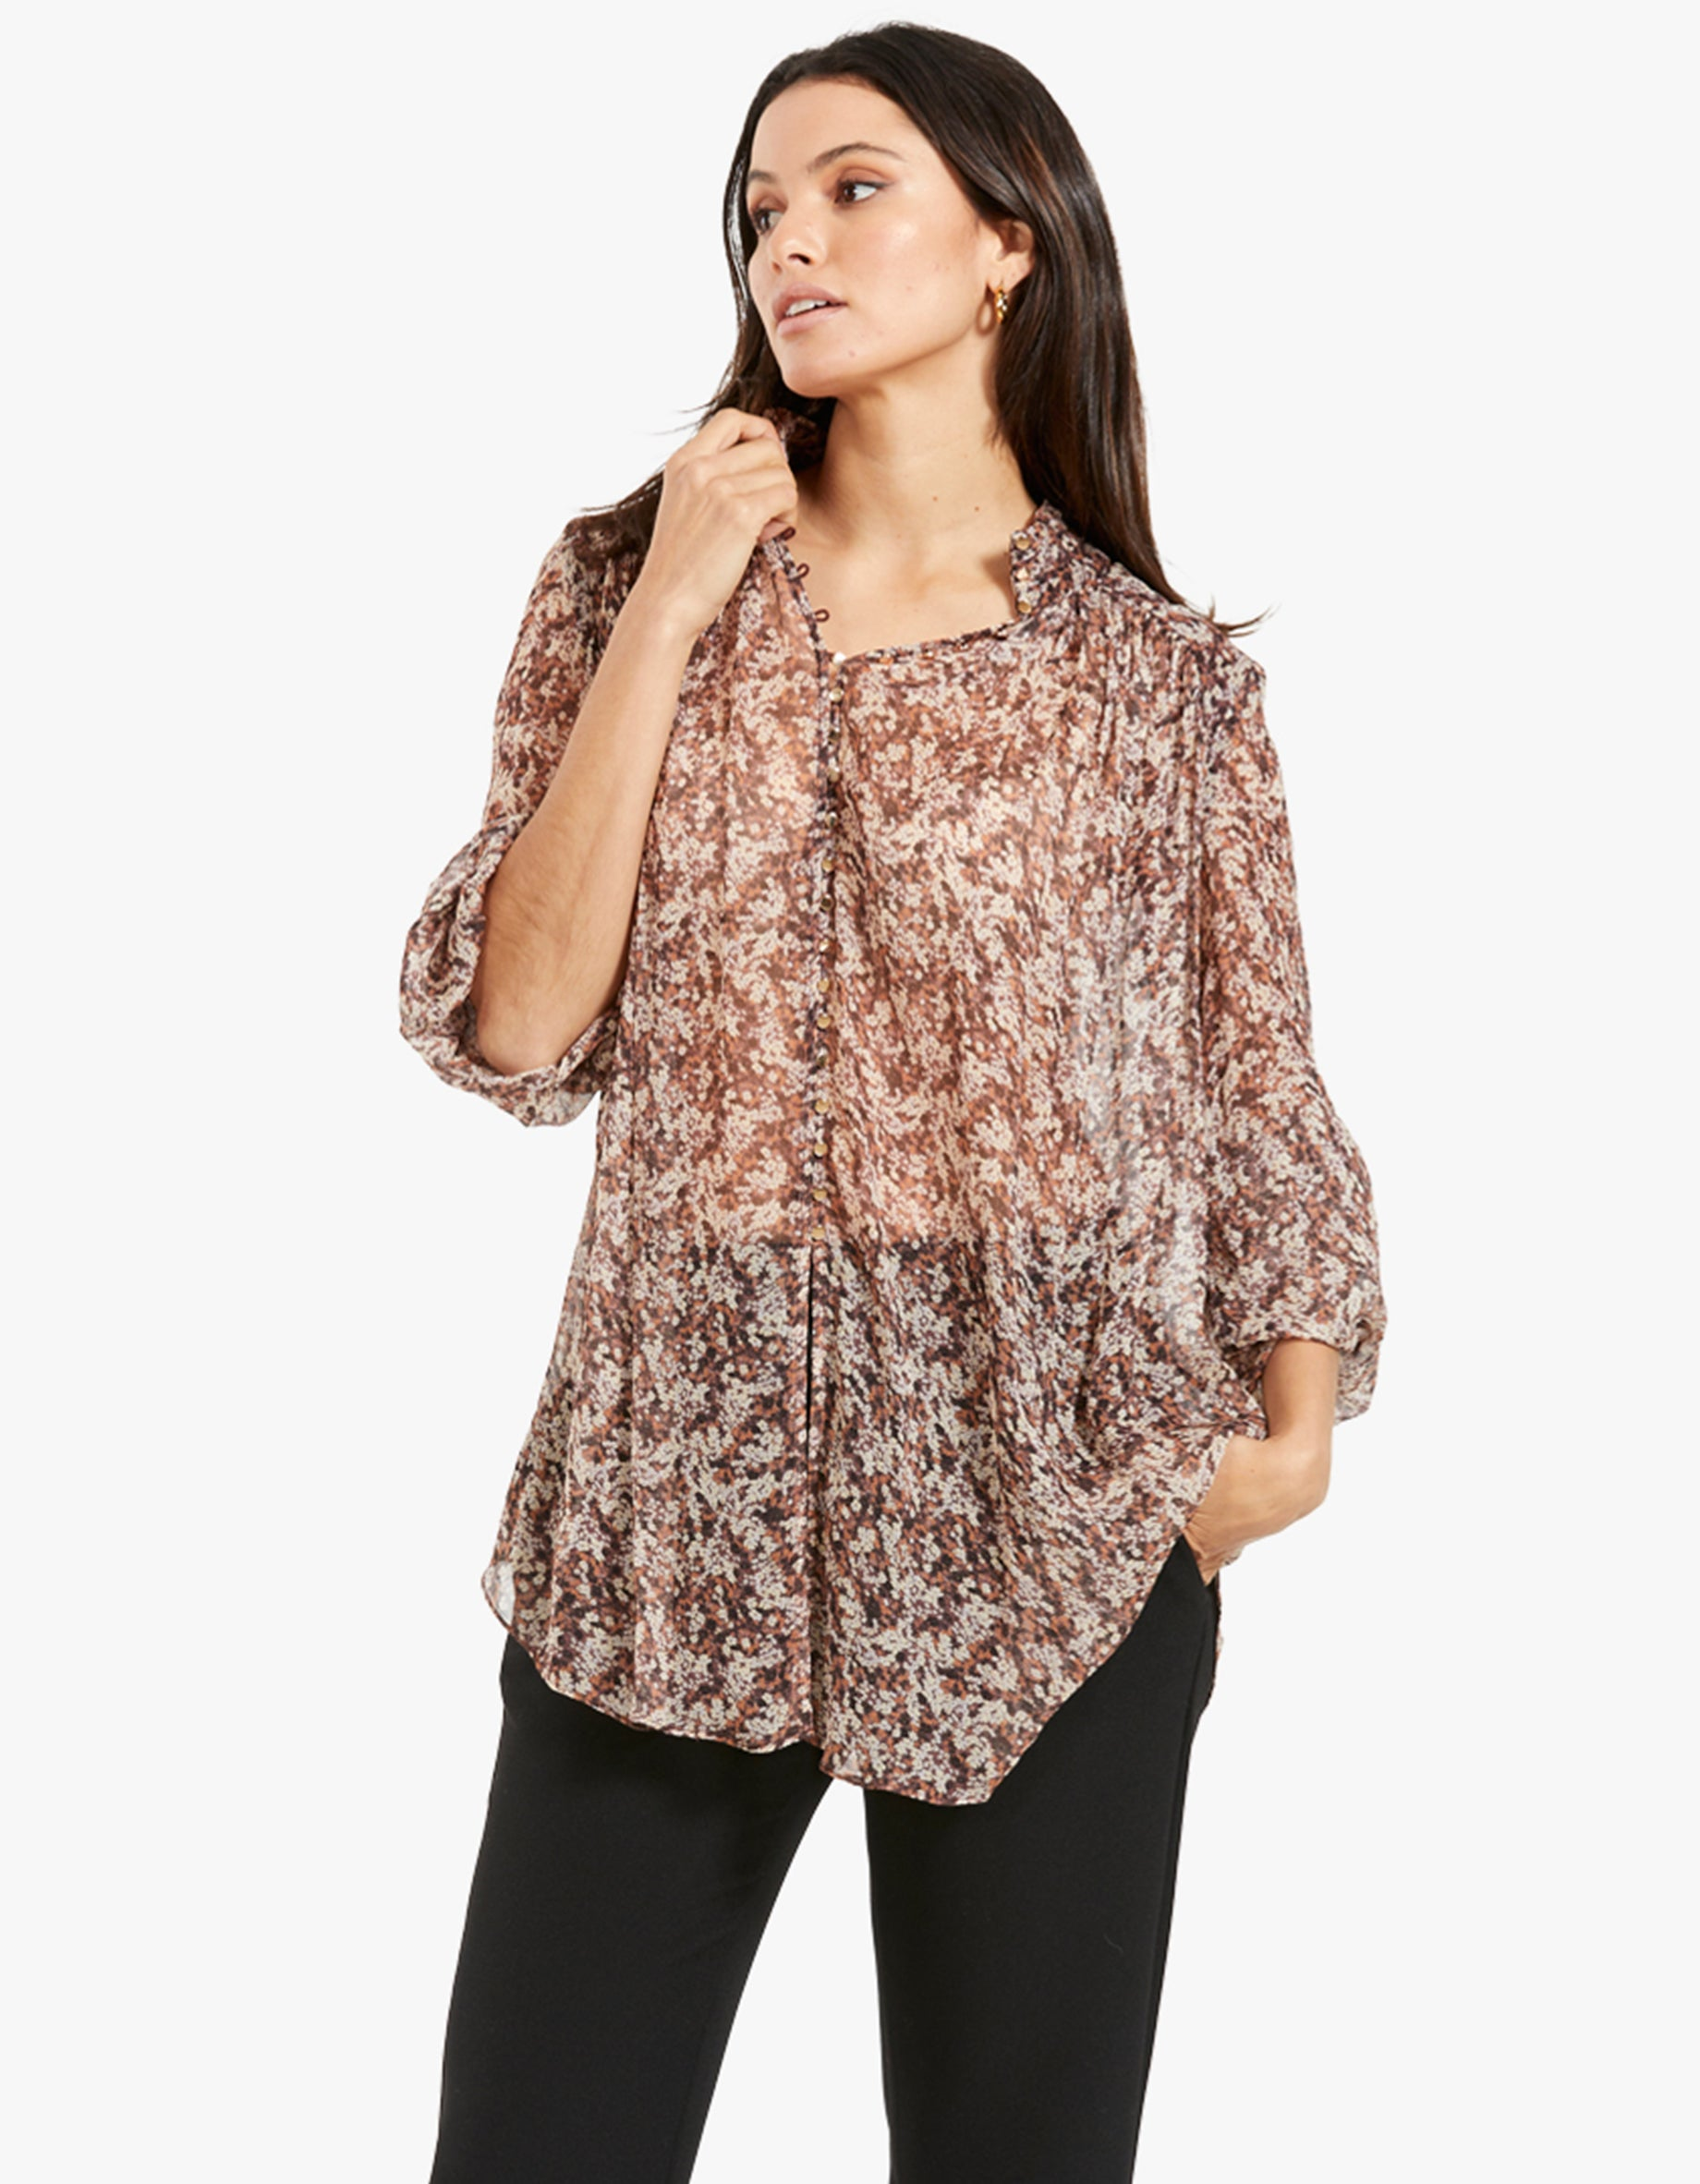 Blossom Button Up Blouse - Choc/Multi